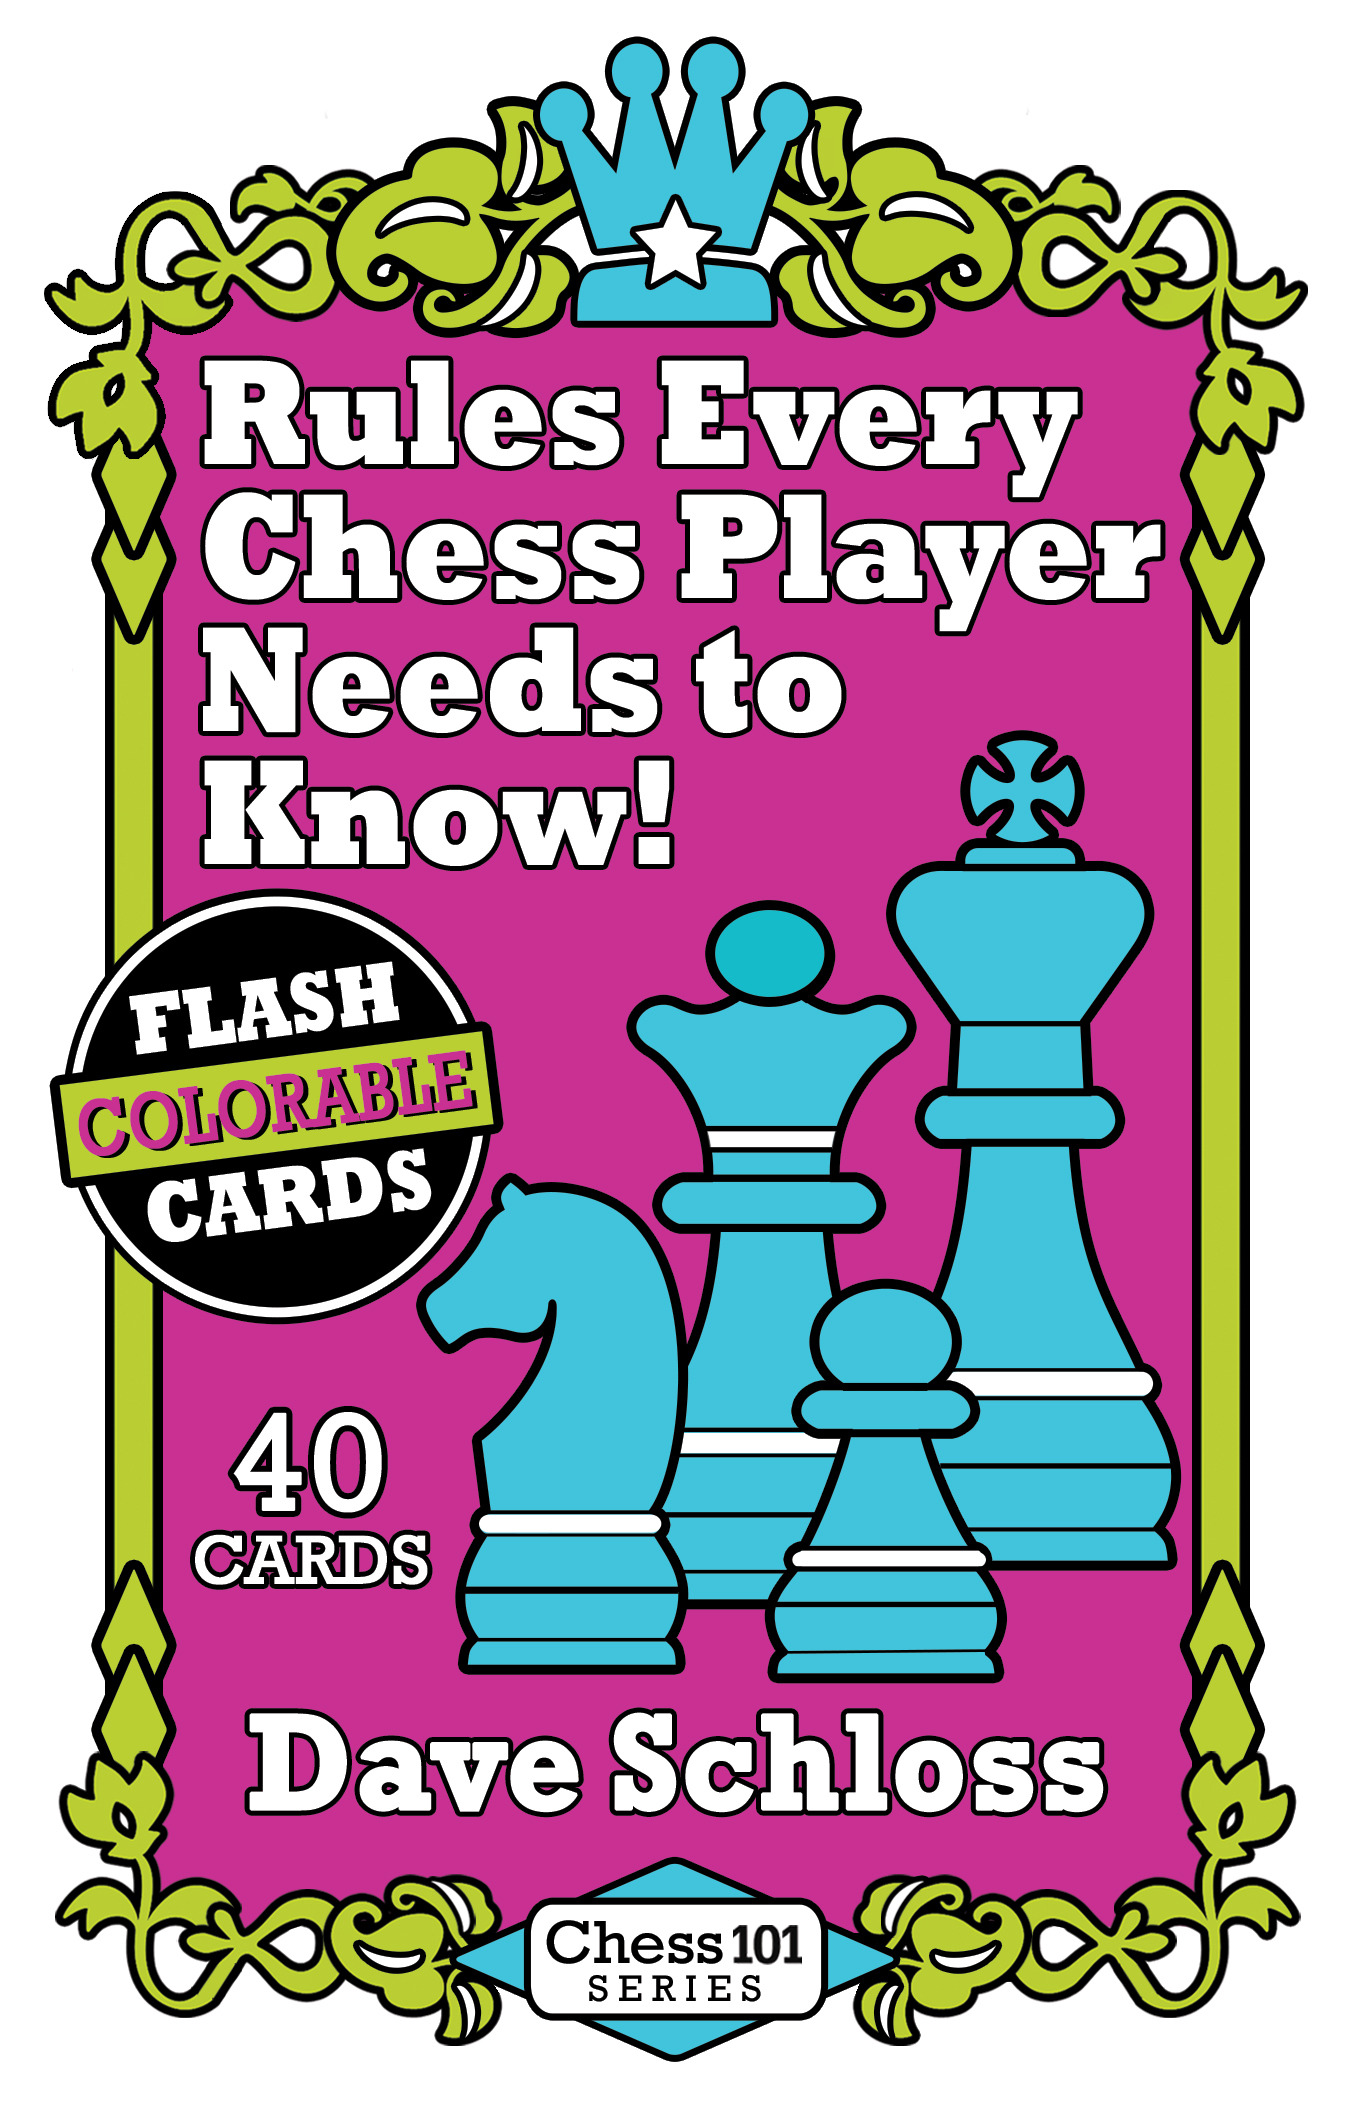 40 common U.S. Chess Federation tournament rules every chess player needs to know